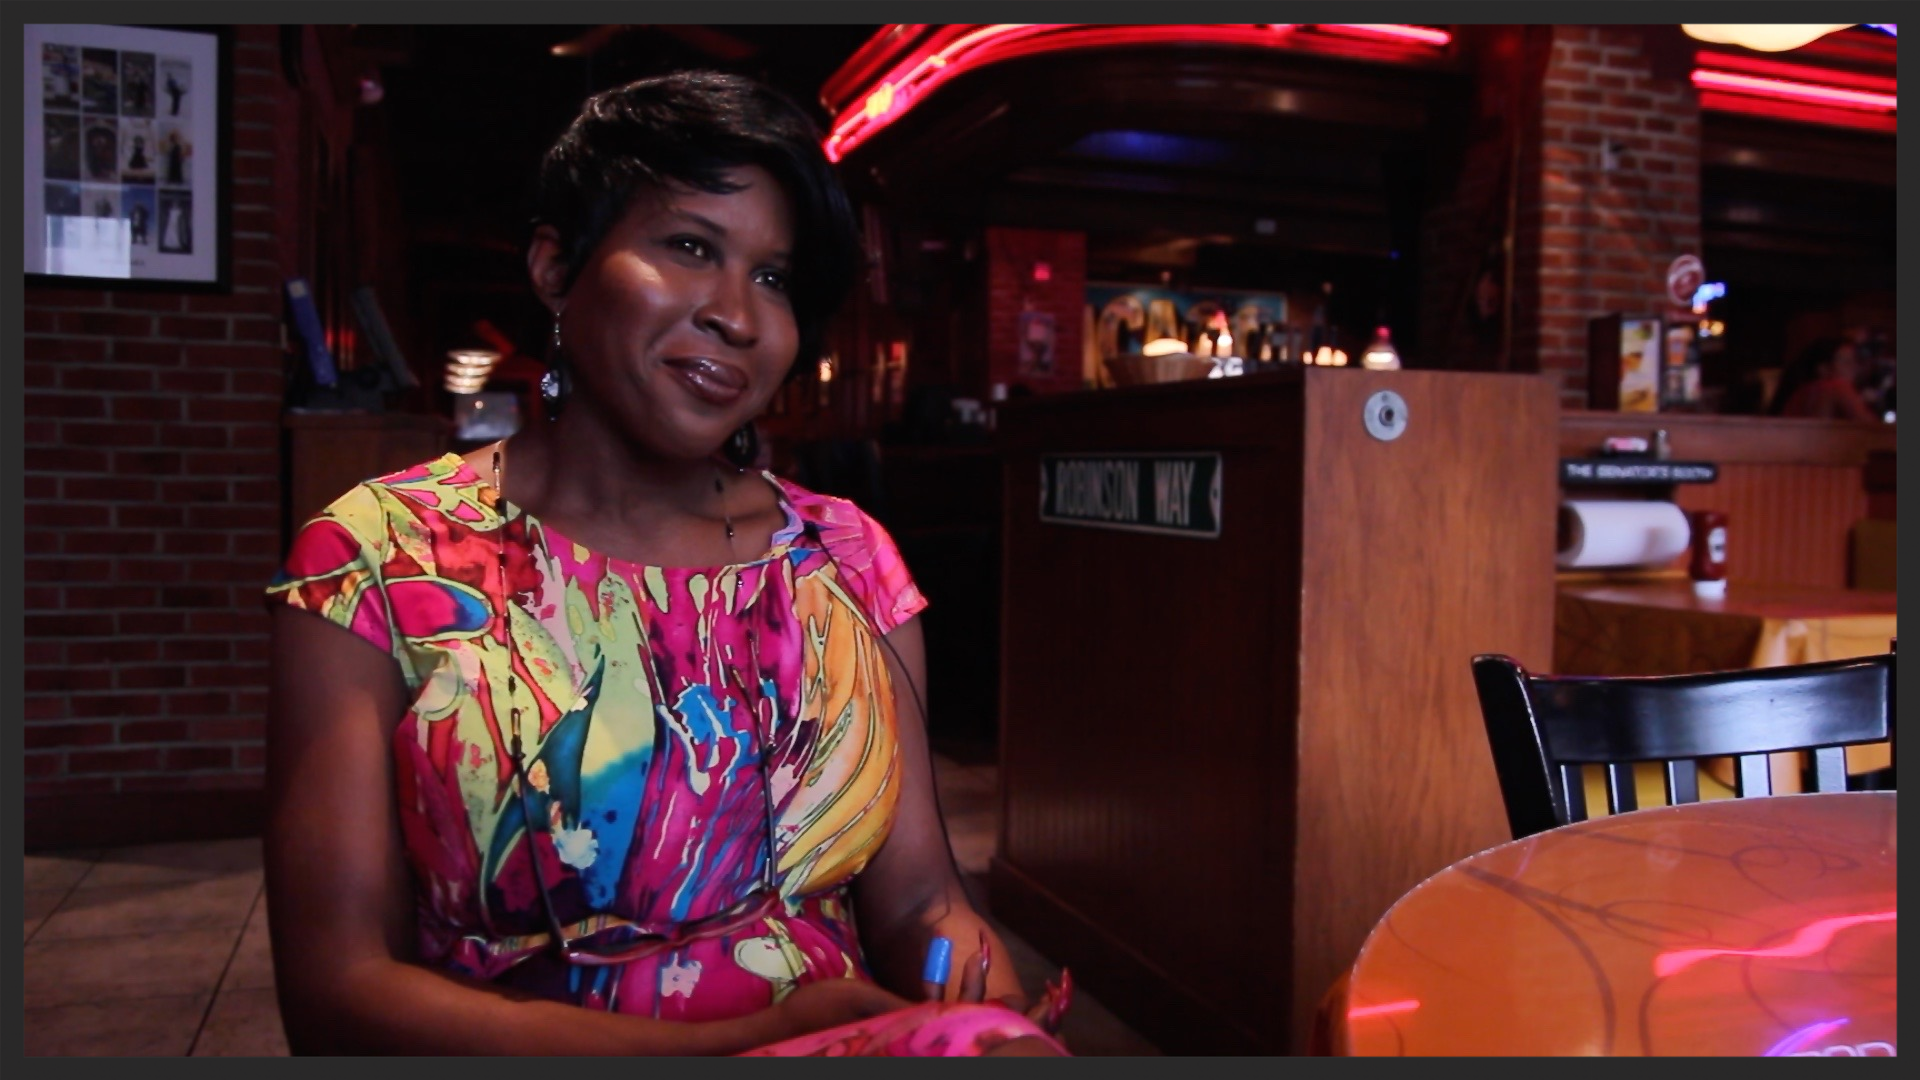 Jarejé Spencer is famous in her own right among Dayton's LGBT community. A regular headliner at Club Masque, Spencer identifies as transgender, and began fully transitioning to her true, female self in her late teens.